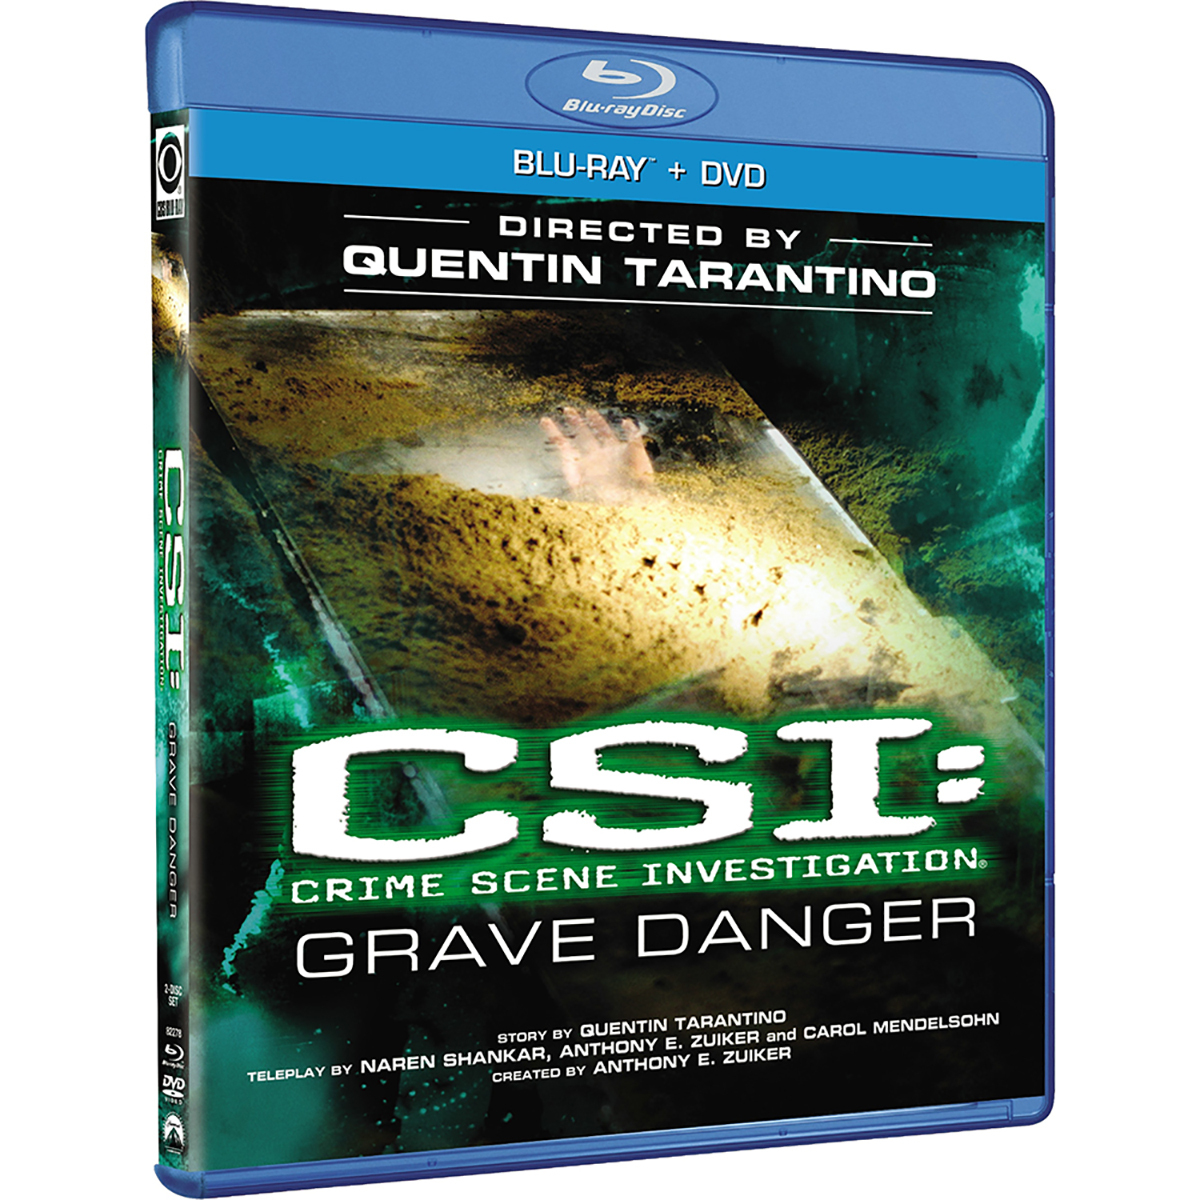 CSI: Crime Scene Investigation - Grave Danger (Blu-ray + DVD Combo) -  DVDs & Videos 6445-366553